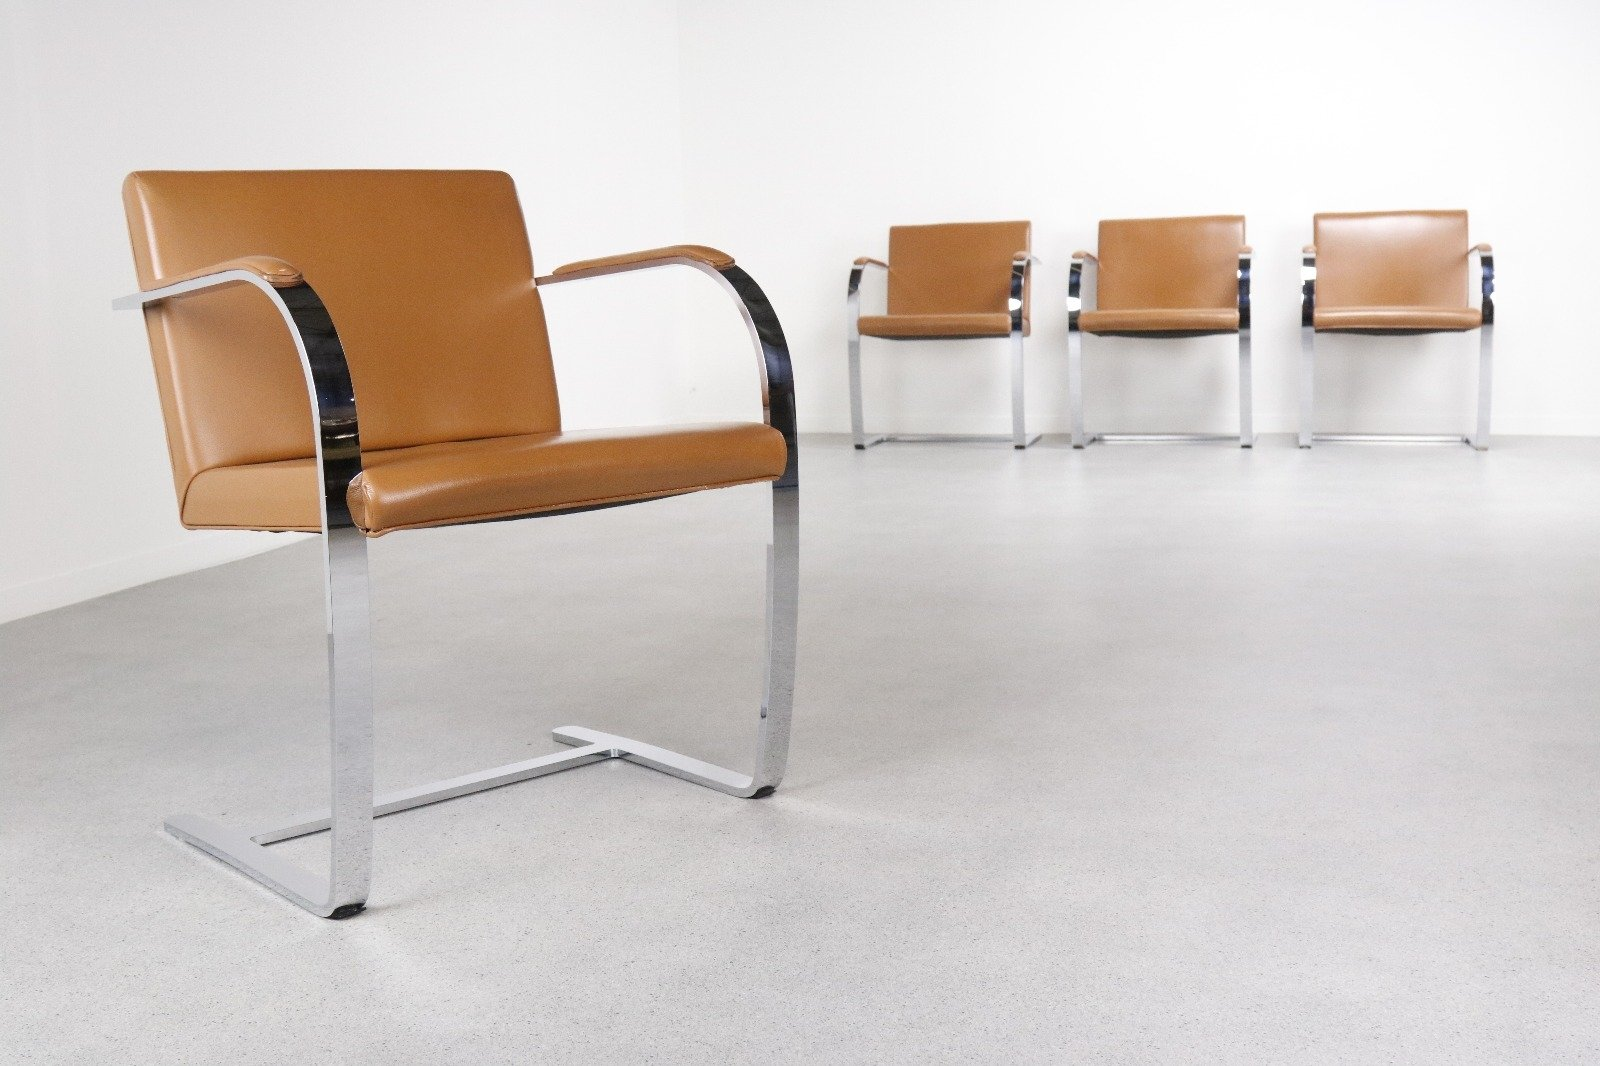 Captivating Set Of 4 BRNO Dinner Chairs By Ludwig Mies Van Der Rohe For Knoll  International, Photo Gallery